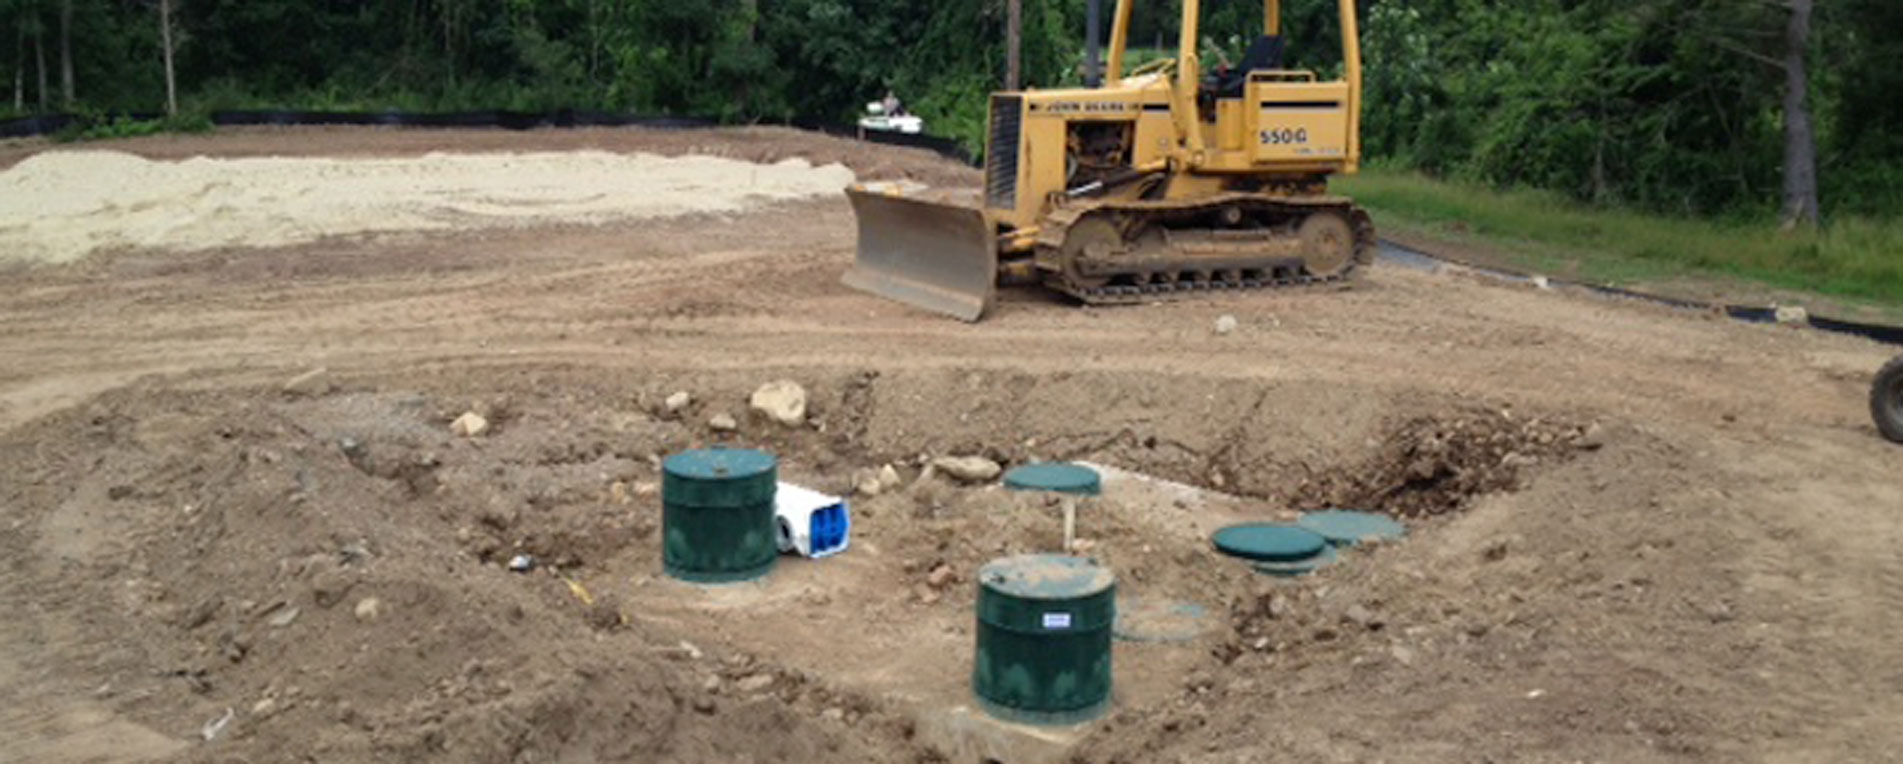 Septic Tanks and Installation Supplies | Yoders Septic Supplies